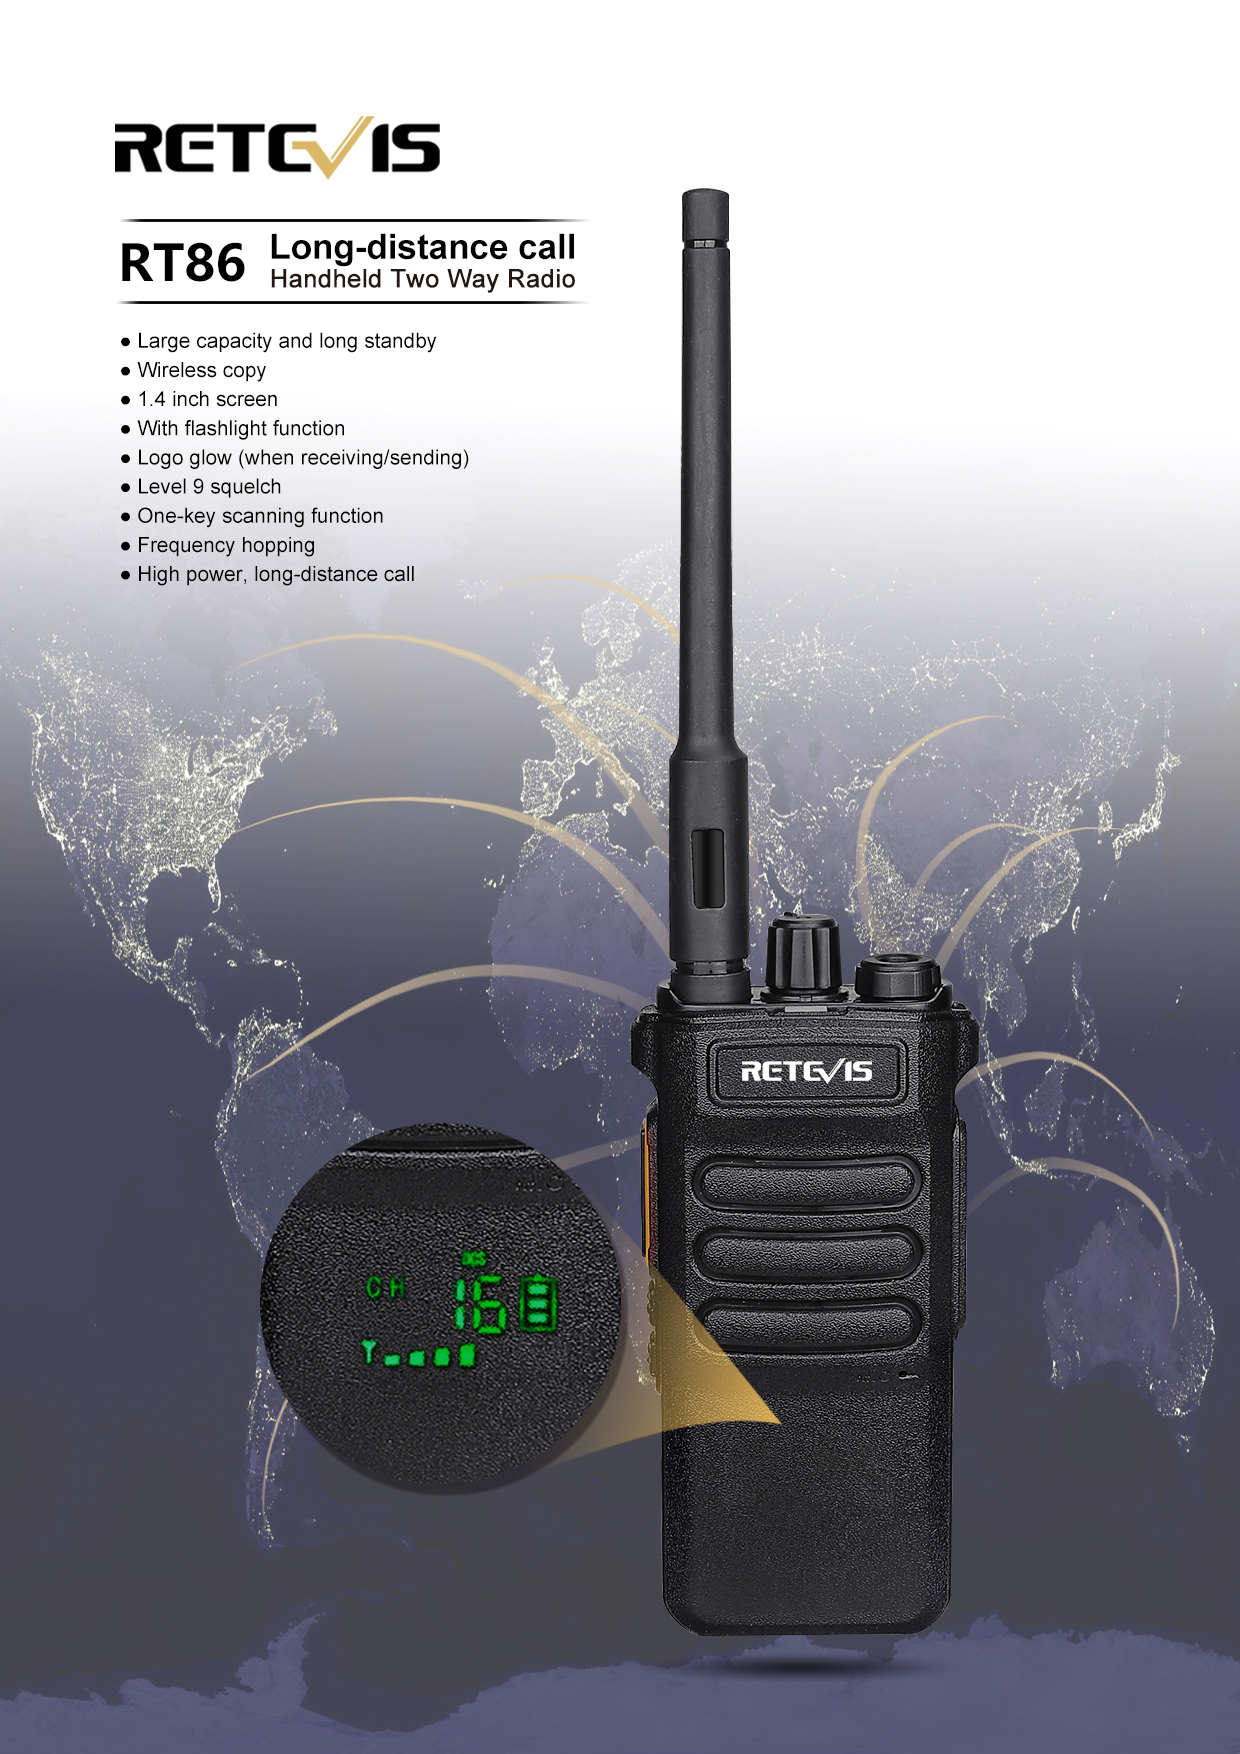 Retevis RT86 High Power Long Standby Wireless Copy Flashlight Two Way Radio Giveaway